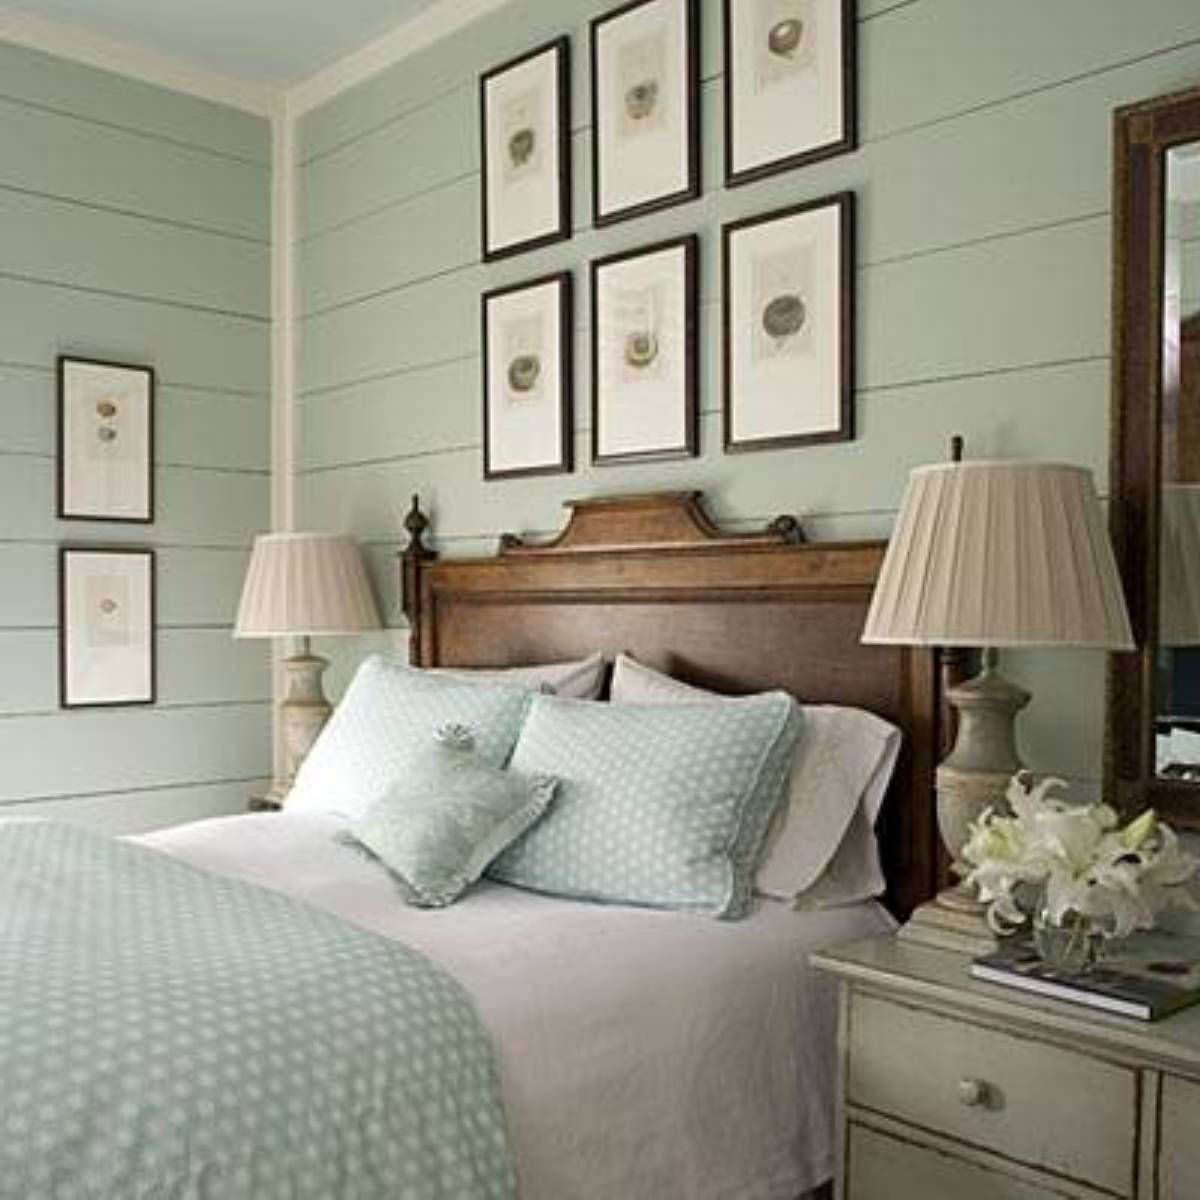 Lovely Nautical Themed Bedroom Coastal Nautical Themed Bedroom Ideas Better Home And Garden